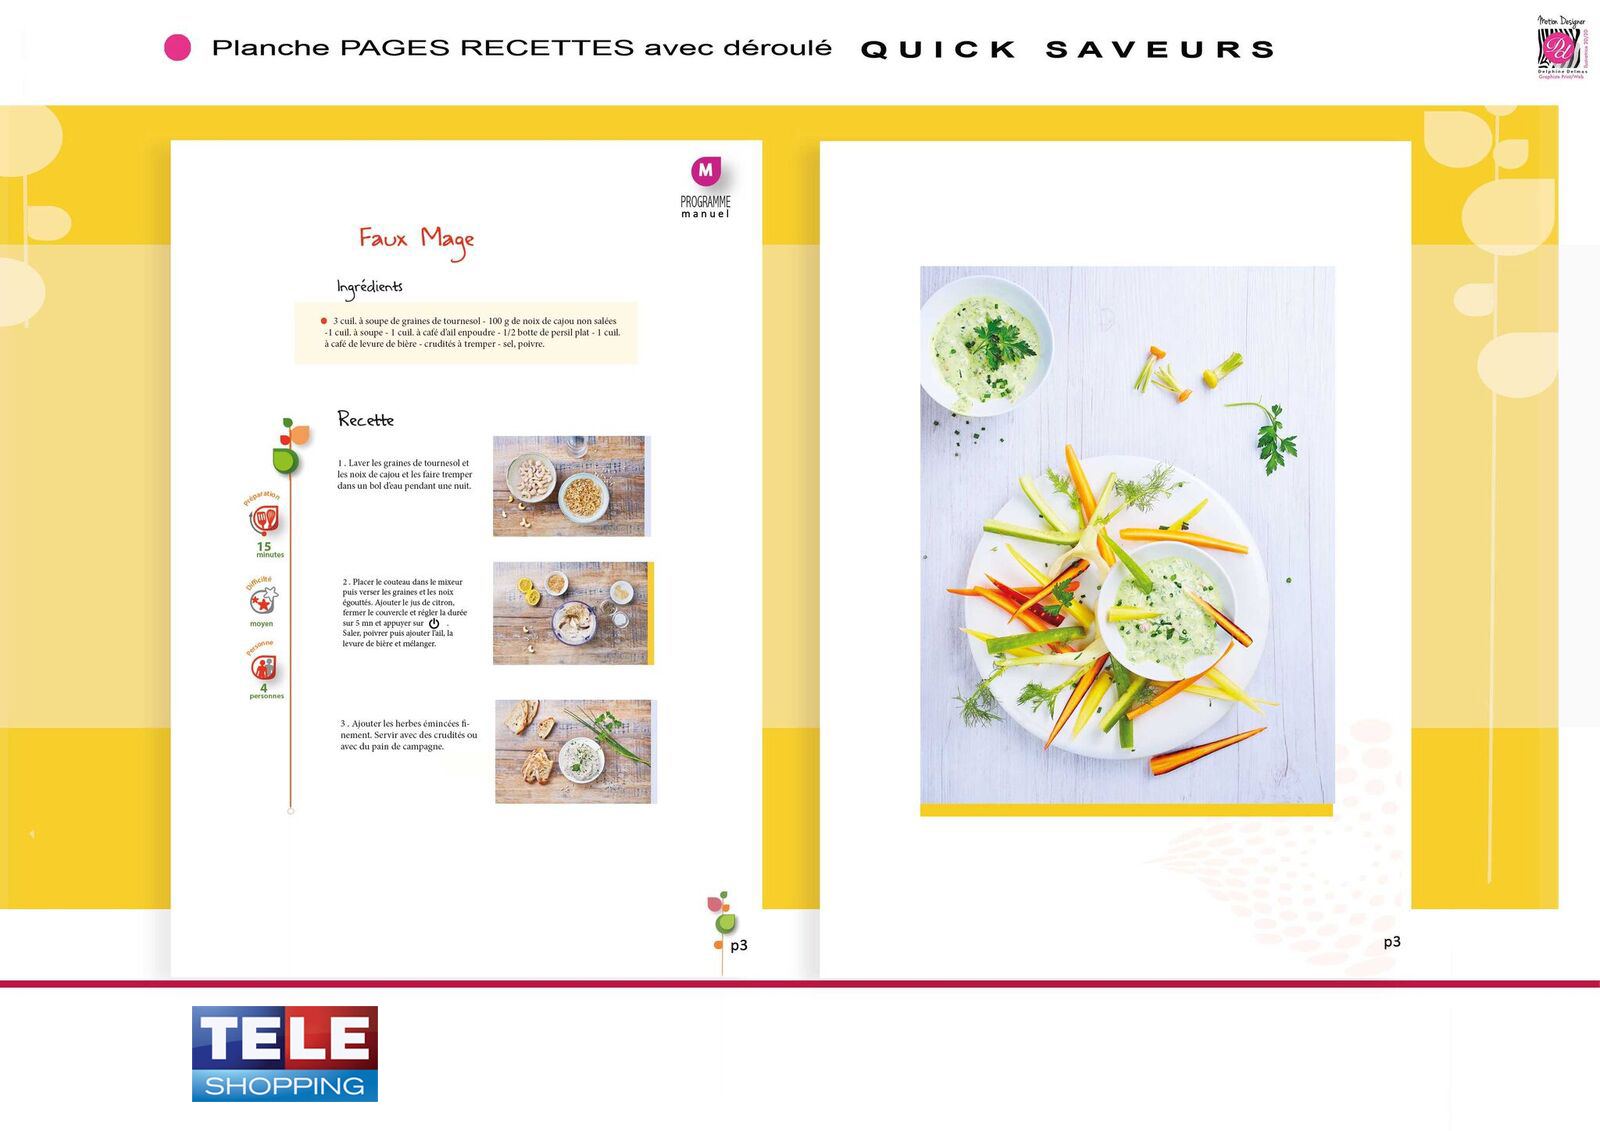 page recette teleshopping